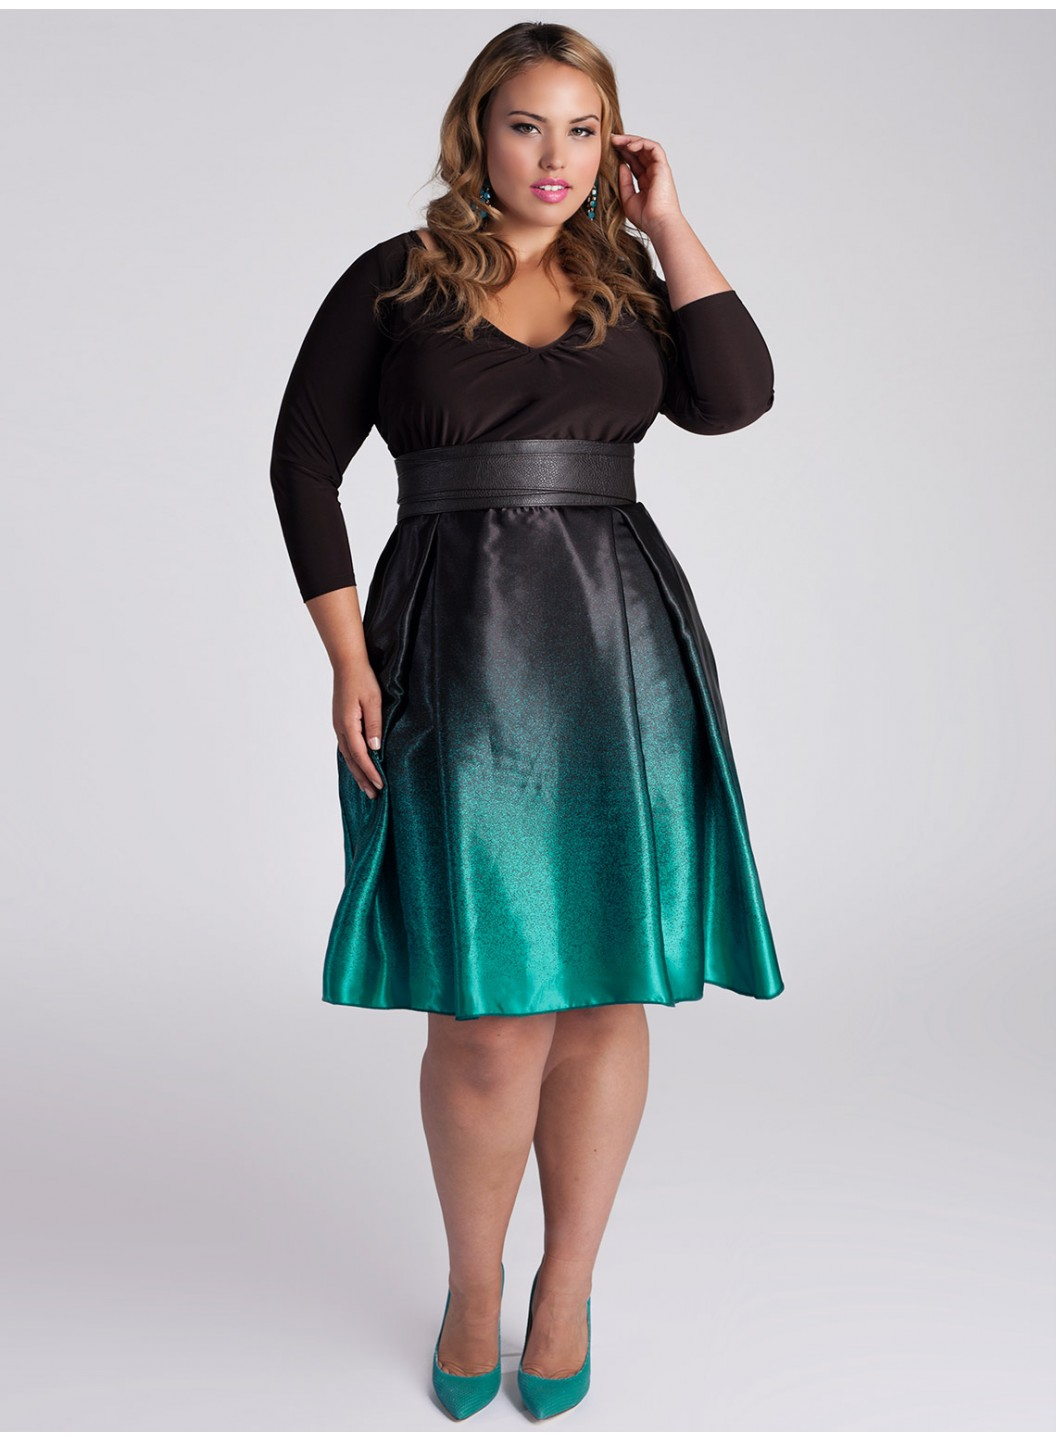 plus size attire reasonably-priced online